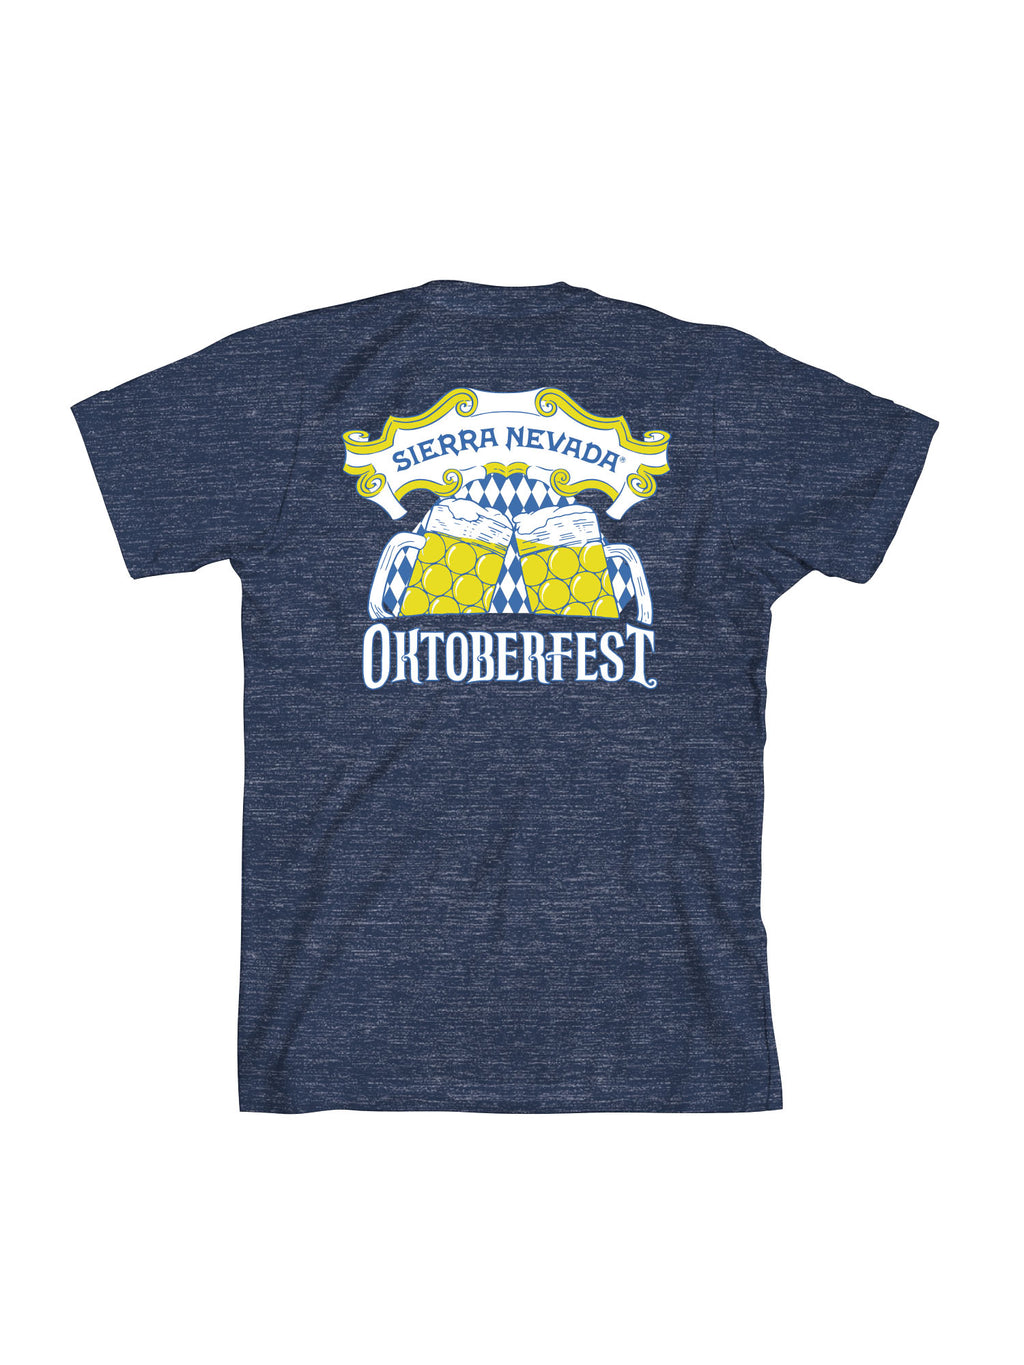 OCTOBER FEST S/S TSHIRT- NAVY